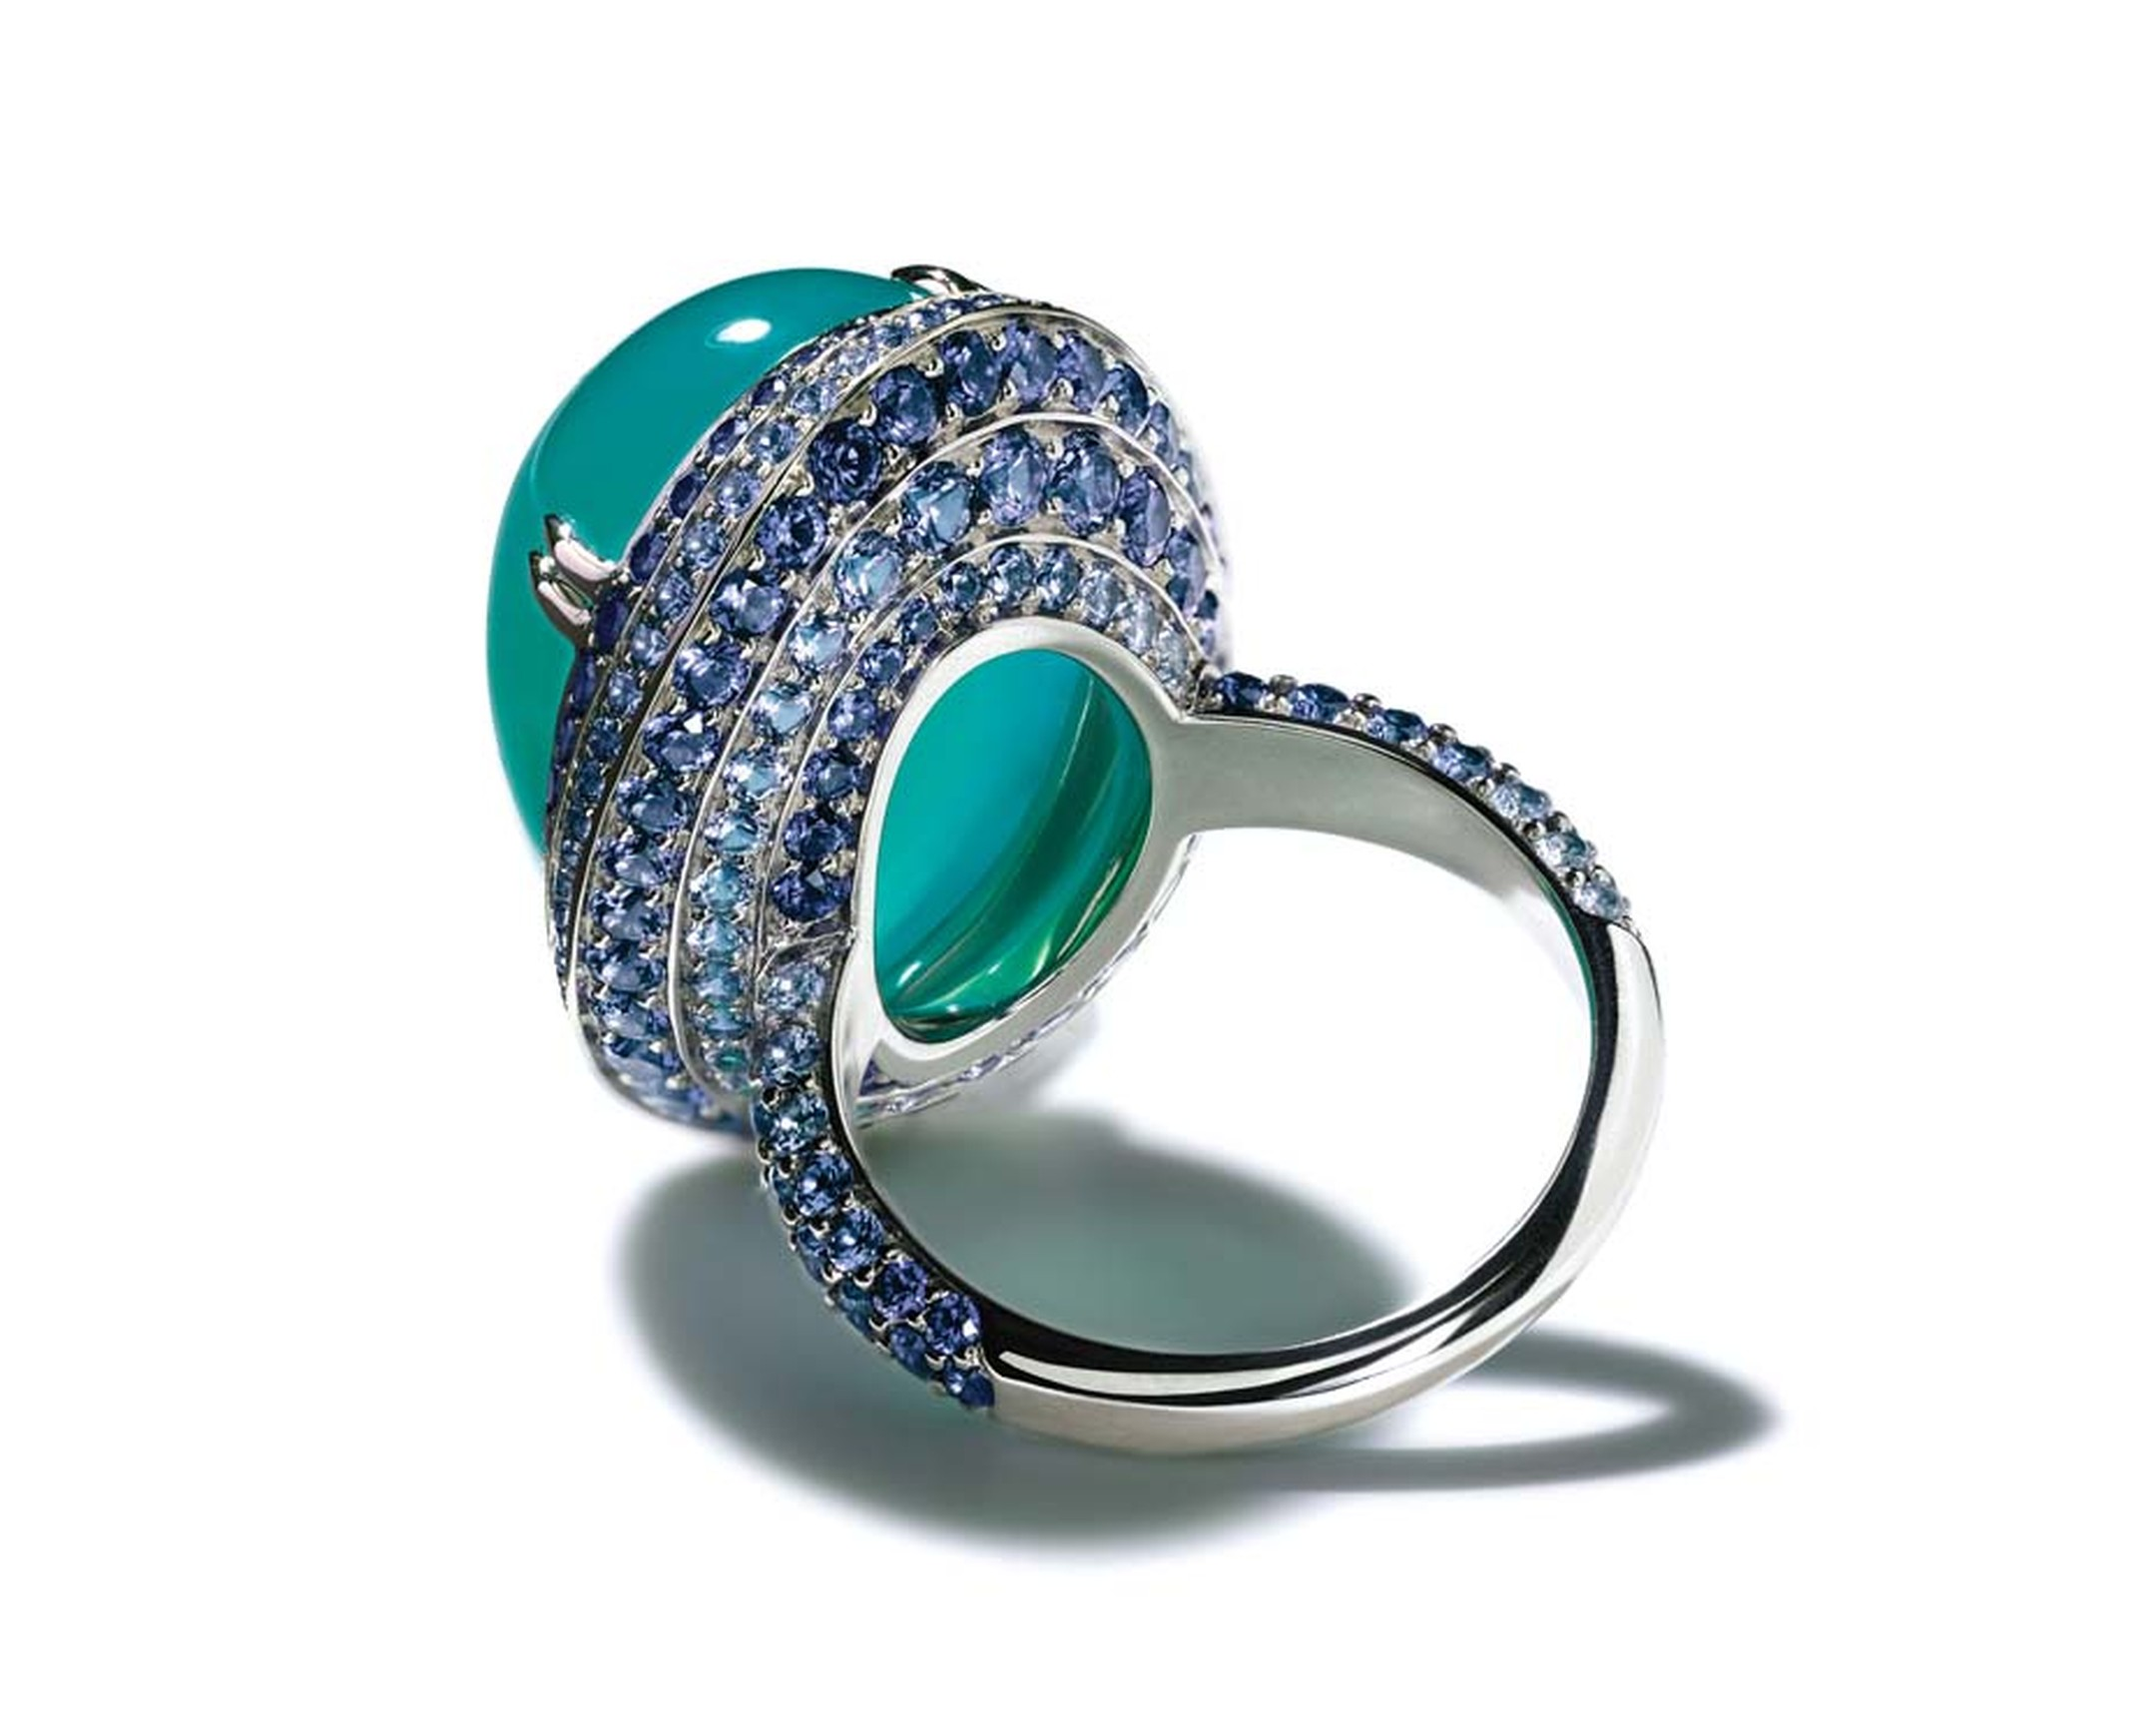 The open back in the platinum setting of Tiffany's Chrysocolla ring, from its Blue Book collection, allows the ocean hues of the gemstone to shine through.